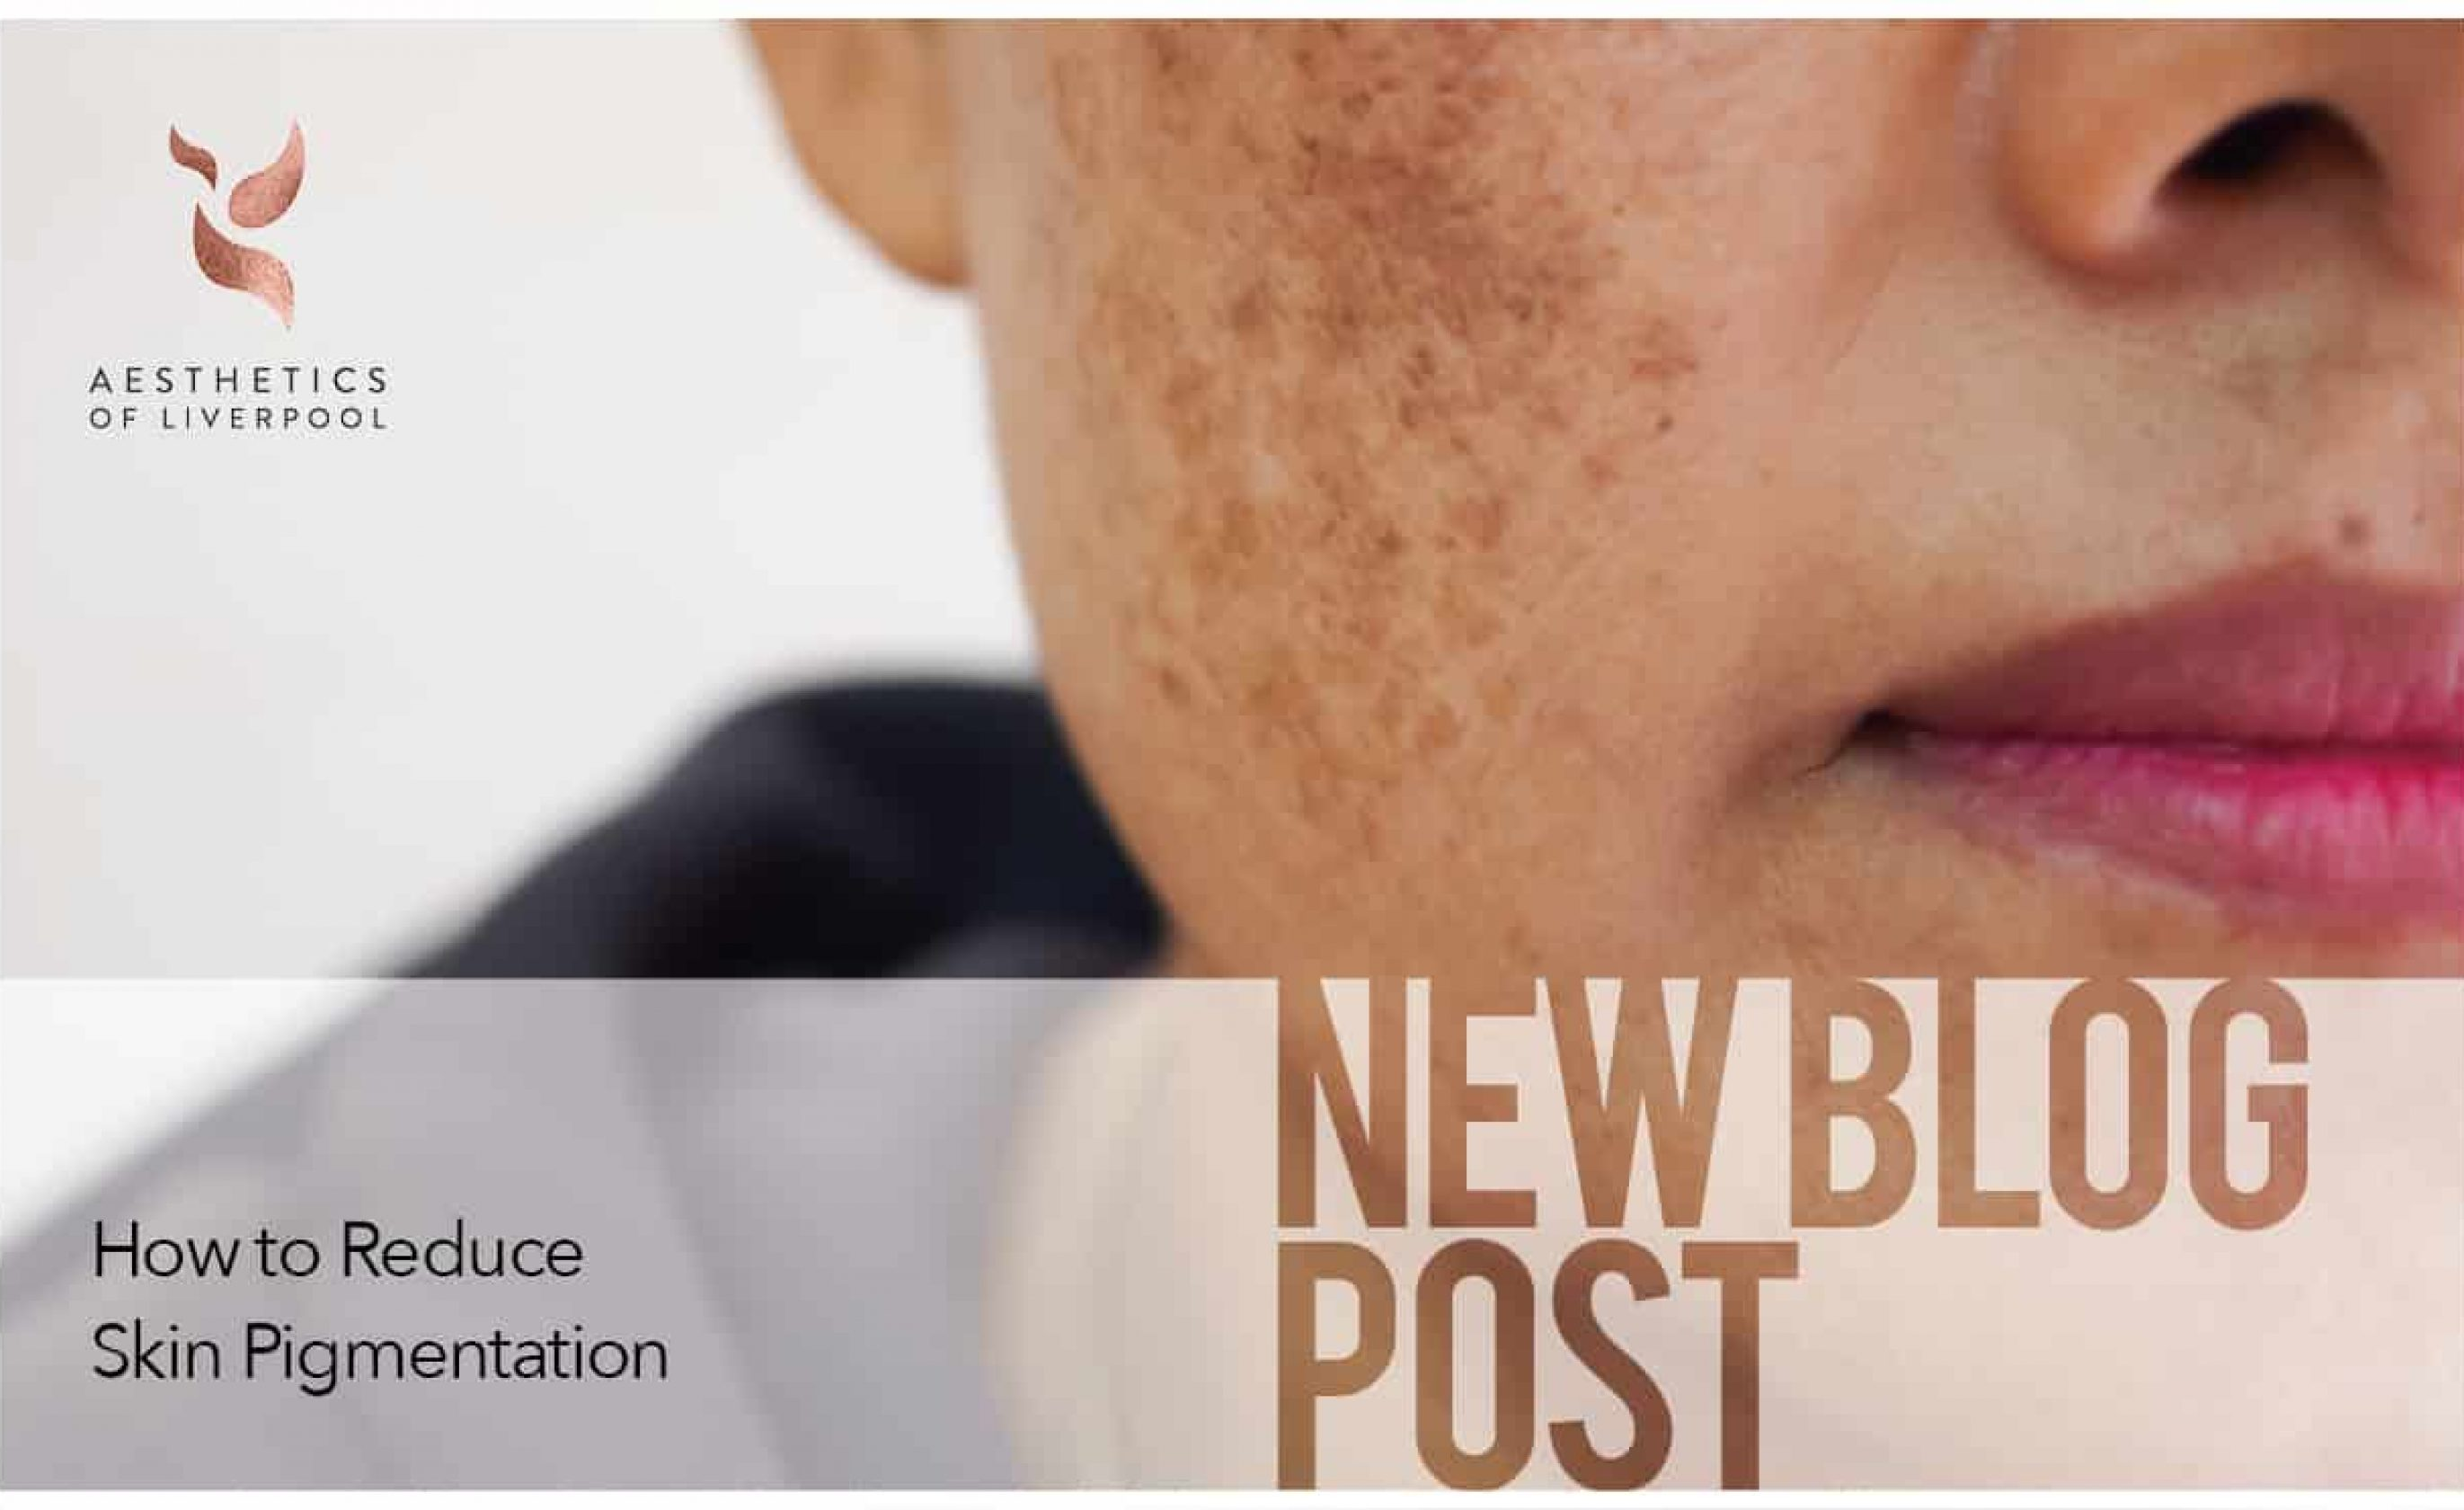 How to Reduce Skin Pigmentation